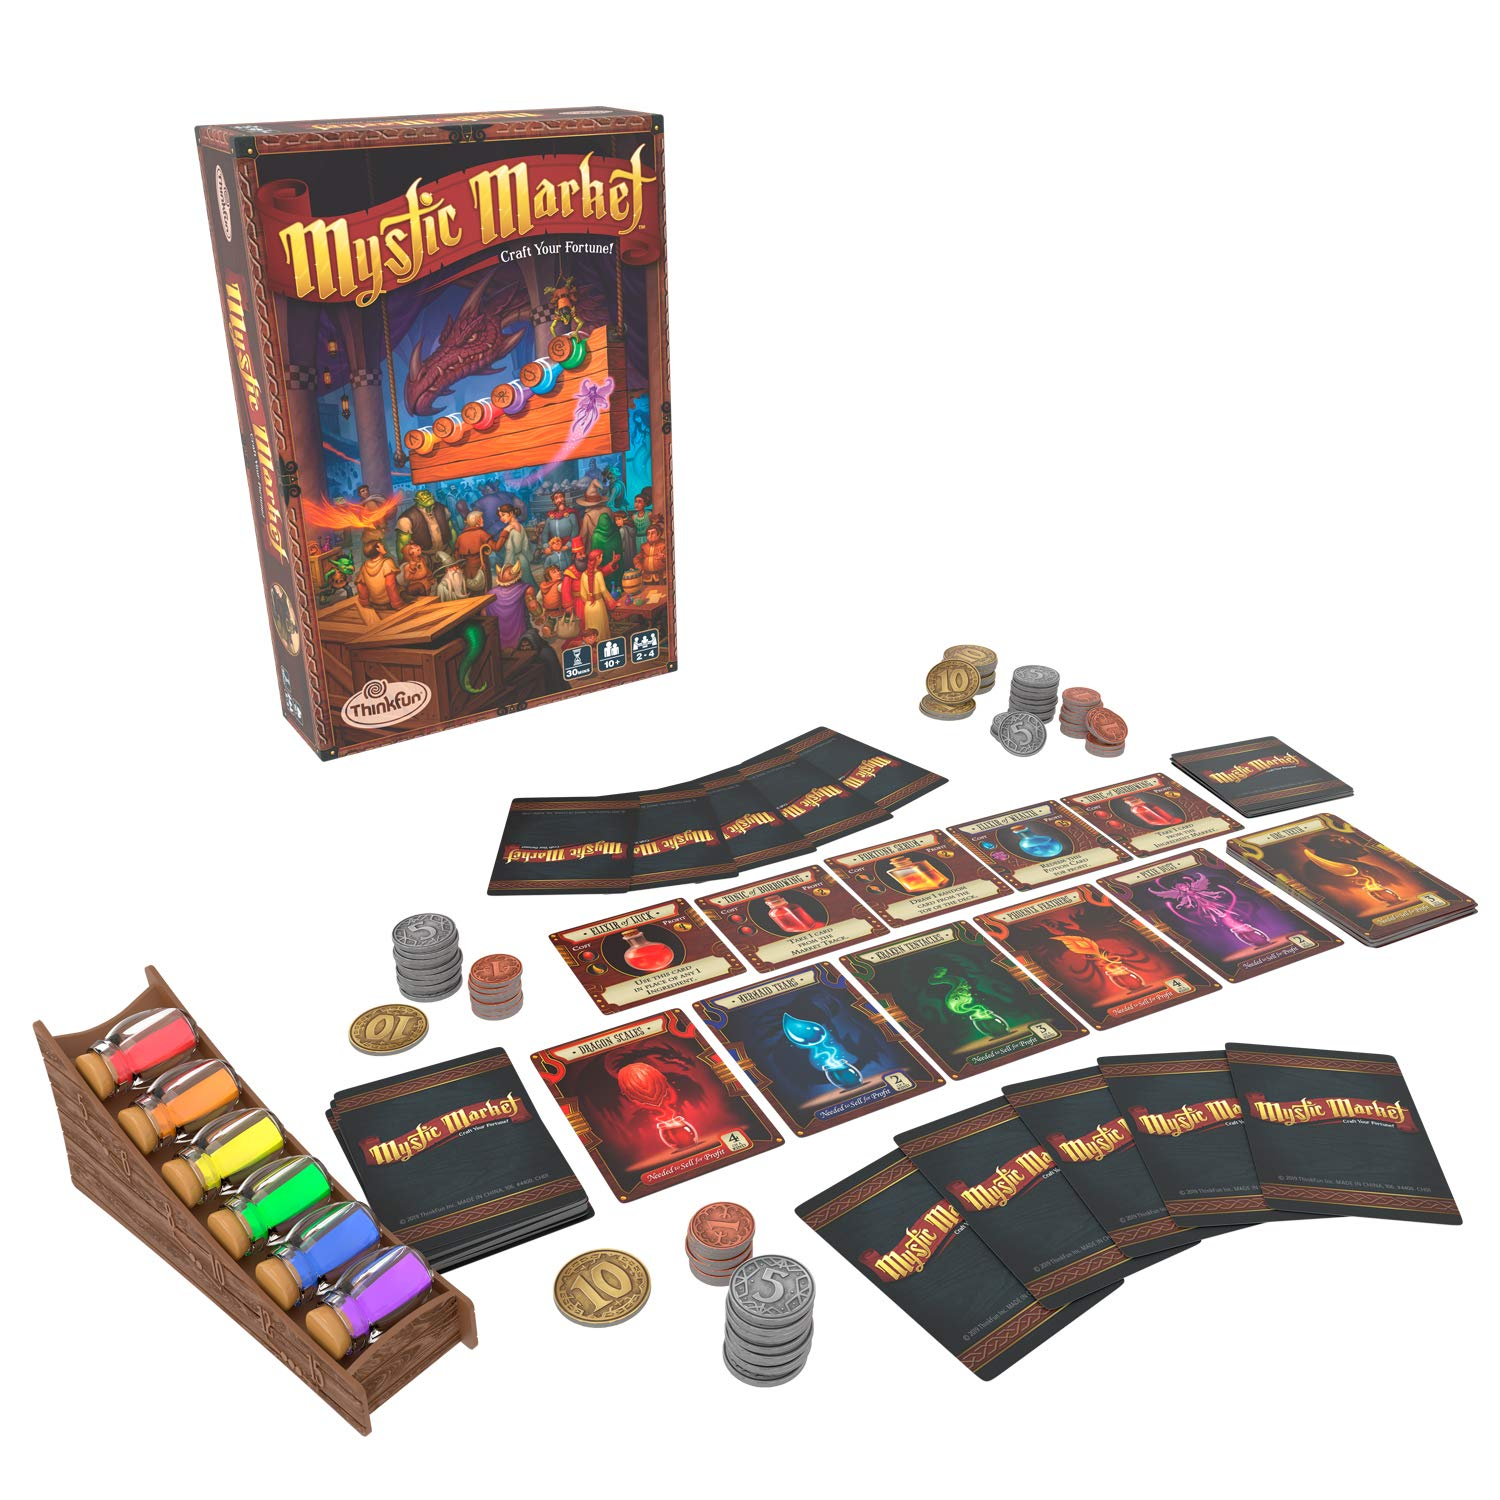 ThinkFun Mystic Market Strategy Card Game for 2-4 Players Ages 10 and Up - an Exciting Fast Paced Game Perfect for Both Families and Gamers, Multi by Think Fun